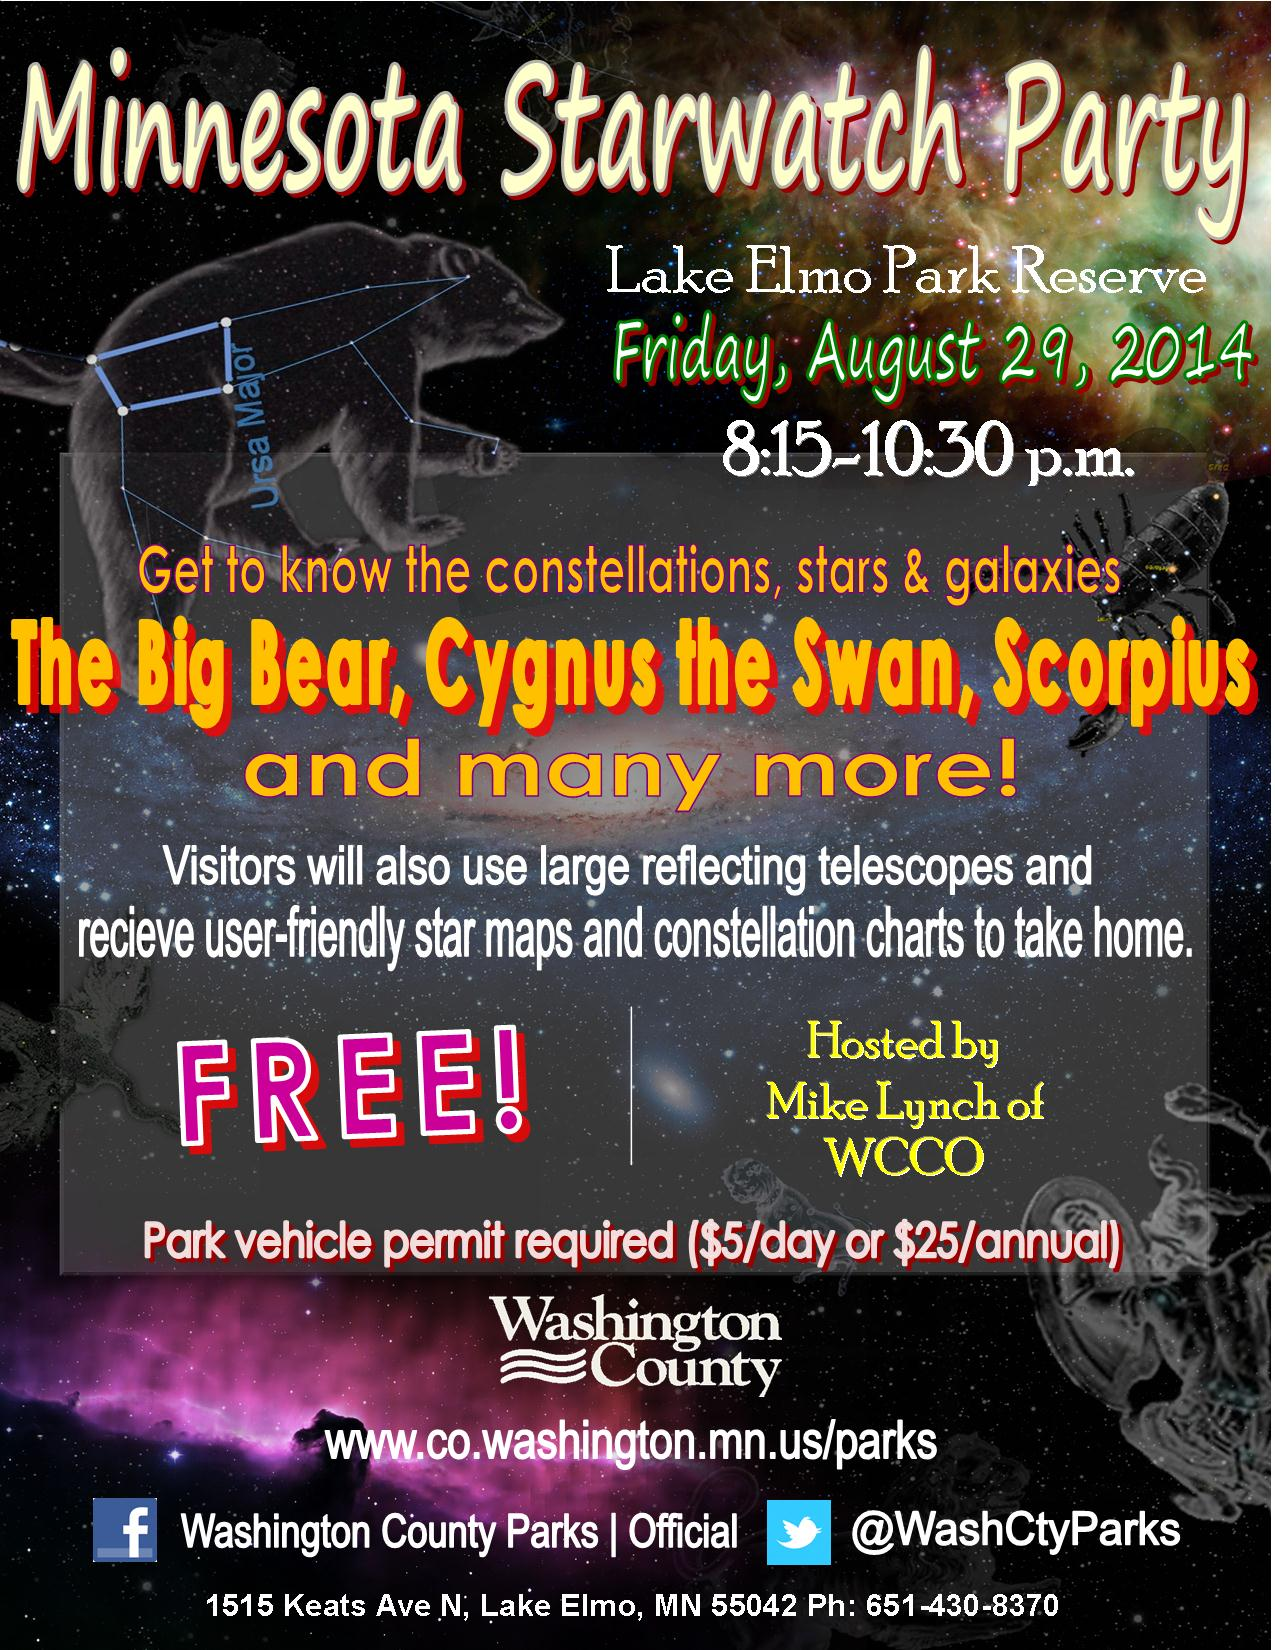 Starwatch Party at Lake Elmo Park Reserve